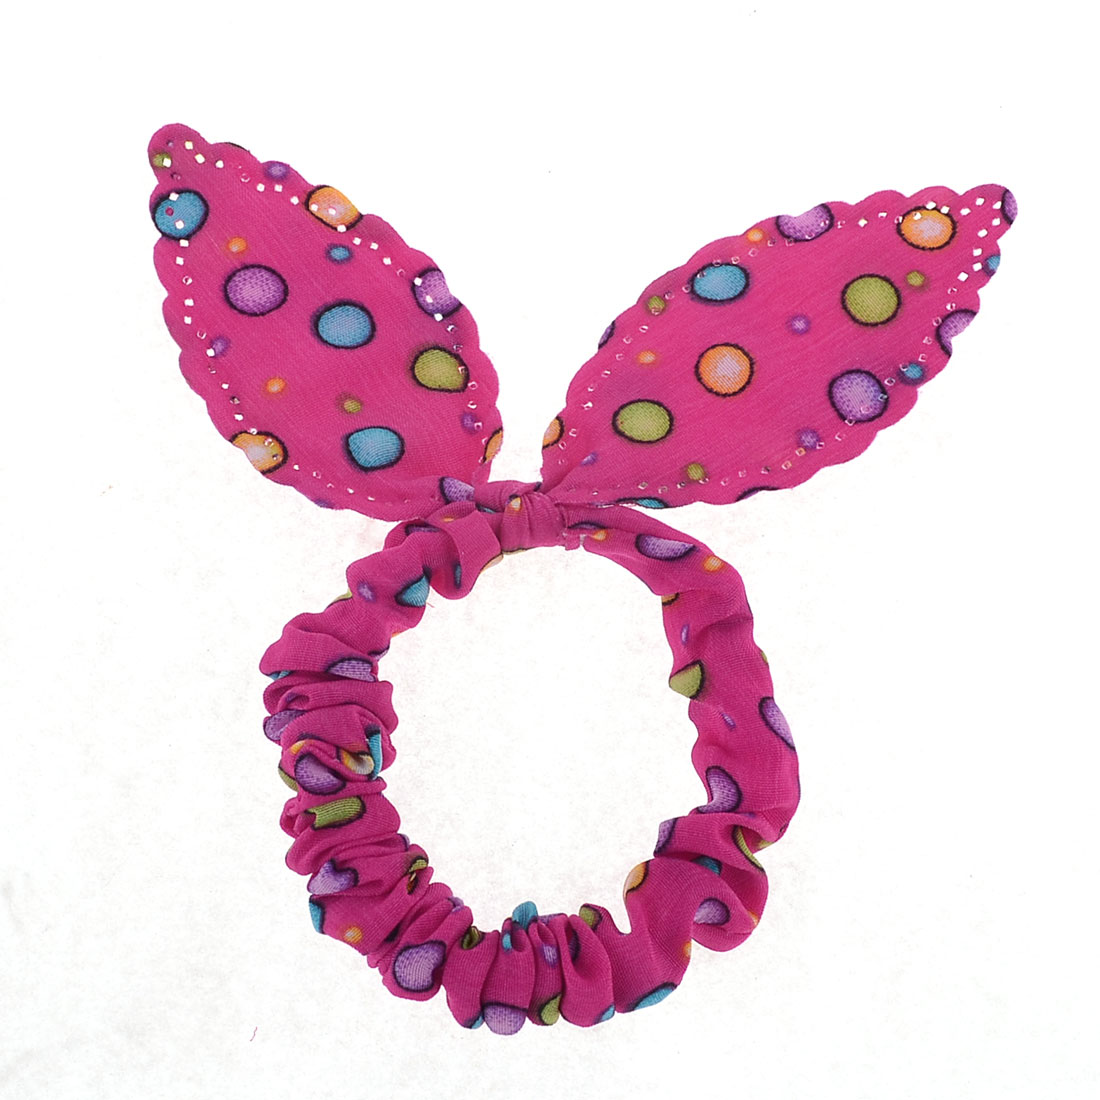 Rabbit Ear Shape Stretchy Band Ponytail Holder Head Ornament Fuchsia for Women